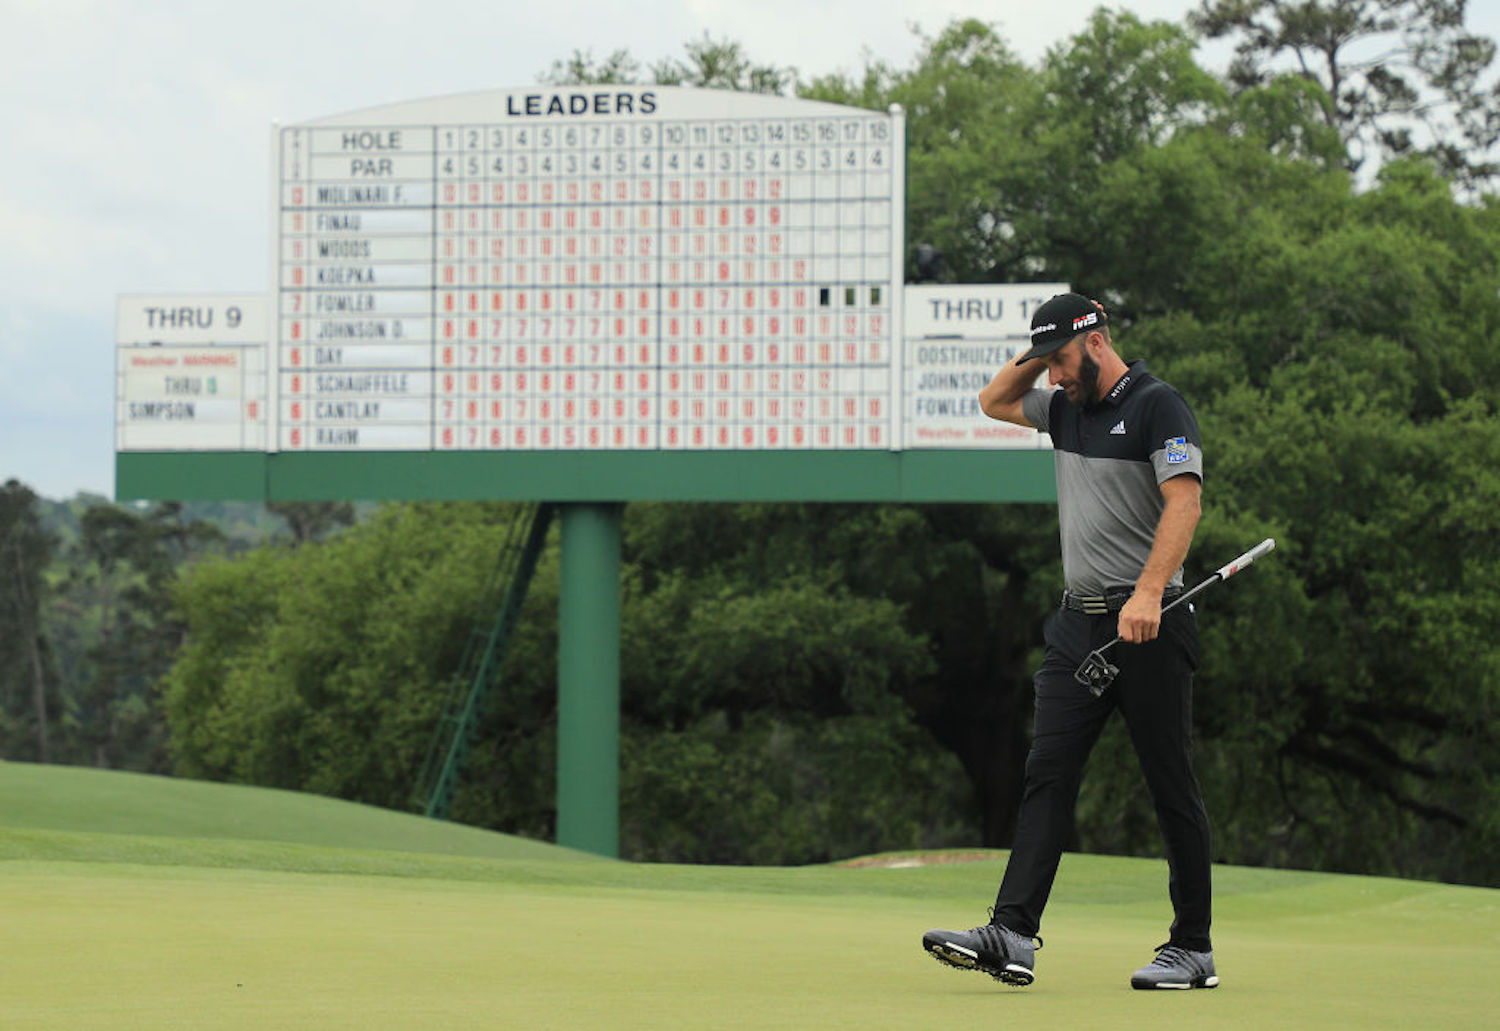 Dustin Johnson hasn't played since the U.S. Open because of a positive COVID-19 test, but he's back on the course just in time for The Masters.